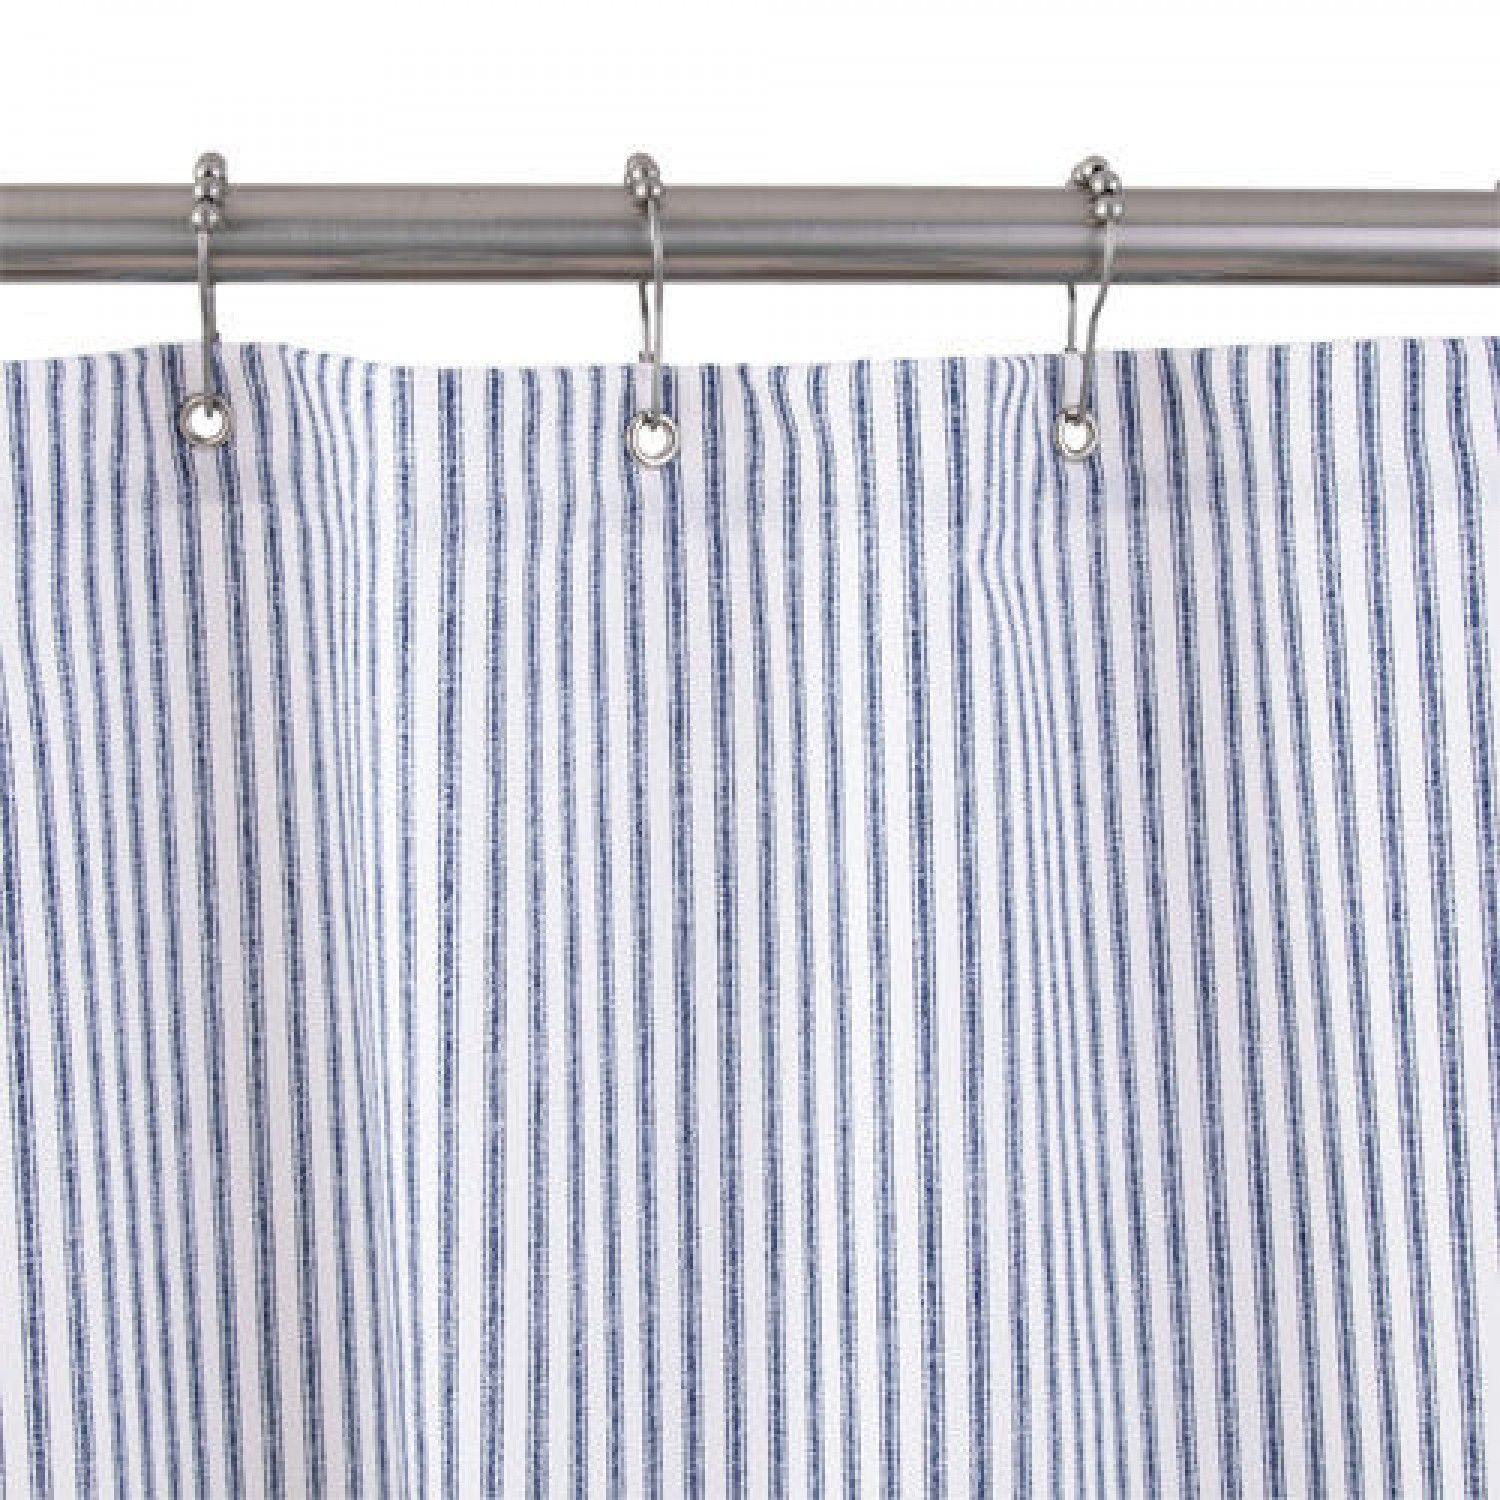 Bathroom Furniture Fixtures And Decor Striped Shower CurtainsFabric